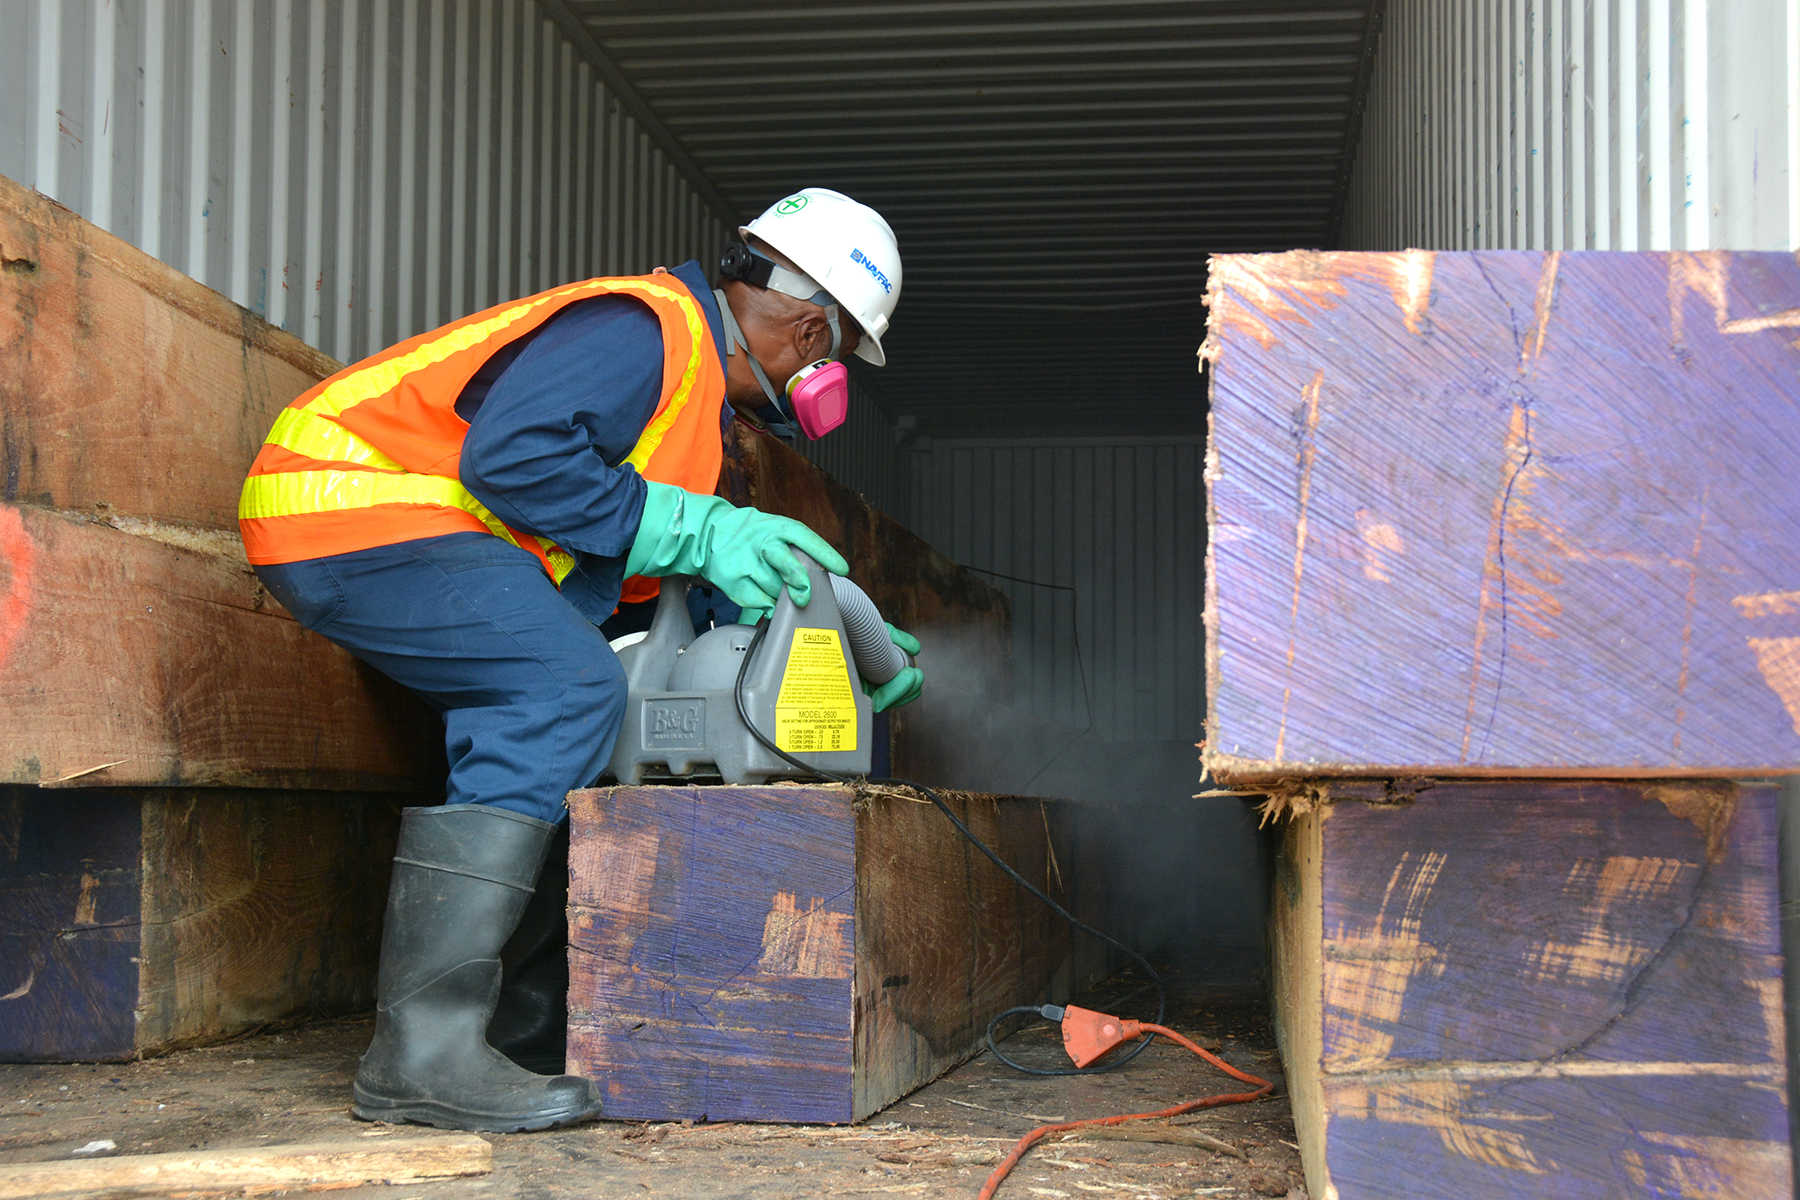 PEARL HARBOR-HICKAM, Hawaii (Feb. 24, 2015) Pest Control personnel from Naval Facilities Engineering Command Hawaii were called out to treat two shipping containers with large oak timbers from Tennessee due to an unidentified ant species that was discovered Feb. 24 at Joint Base Pearl Harbor-Hickam (JBPHH). The contents of each container was treated in the morning and then in the afternoon, killing the ant colonies found at both locations. State of Hawaii Department of Agriculture was on scene and collected some of the ants. They are working to properly identify them. (U.S. Navy photo by Denise Emsley, NAVFAC Hawaii Public Affairs/Released)